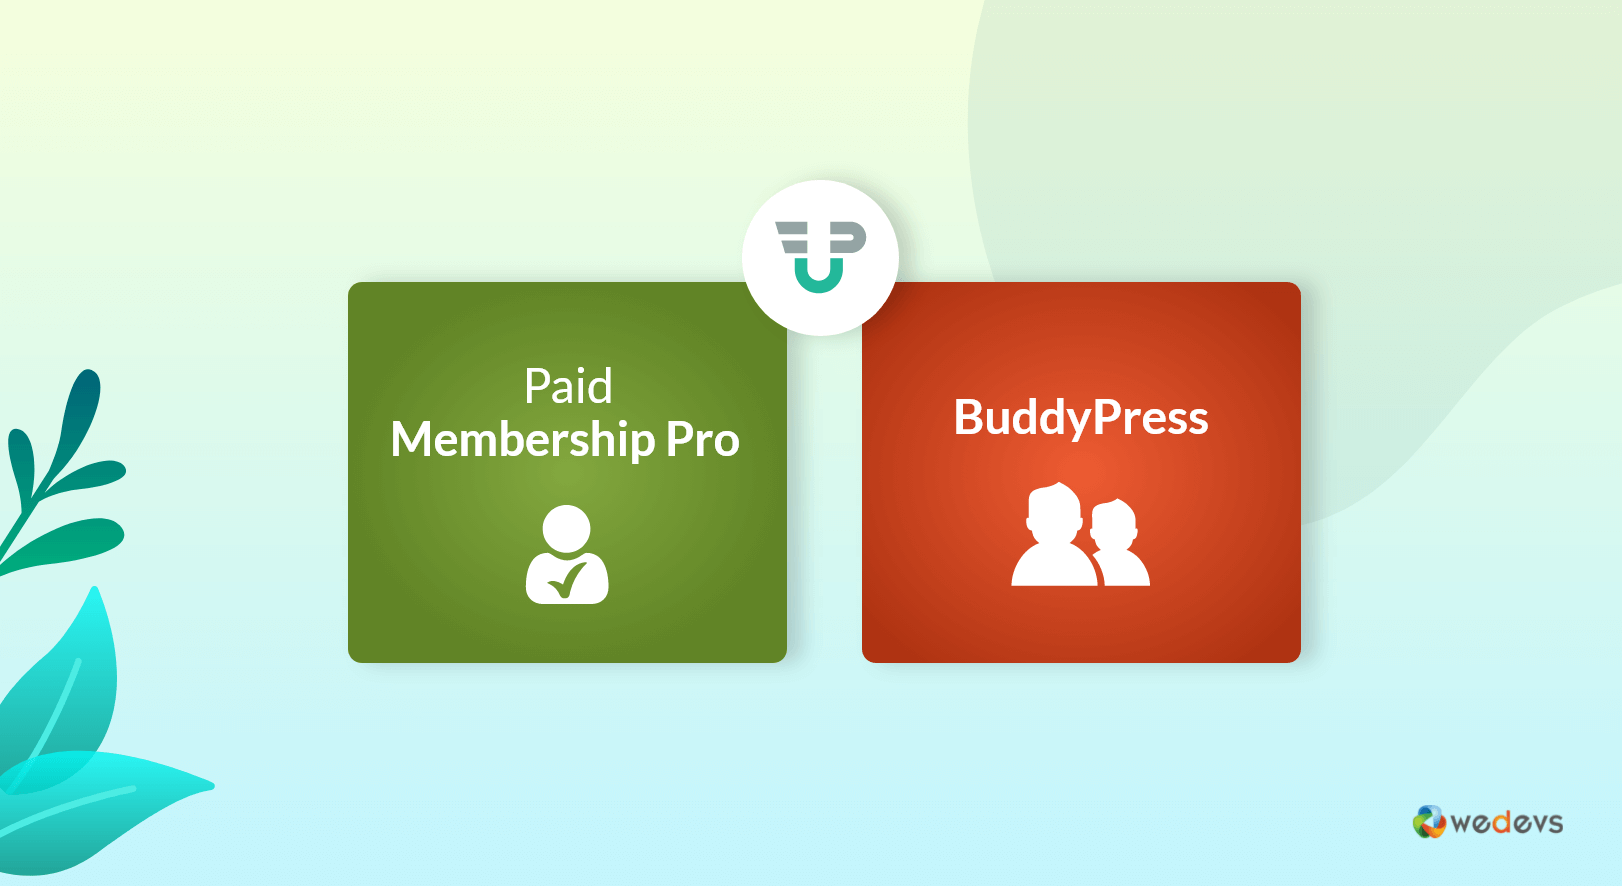 Utilizing BuddyPress & Paid Membership Pro in a Right Way with WP User Frontend